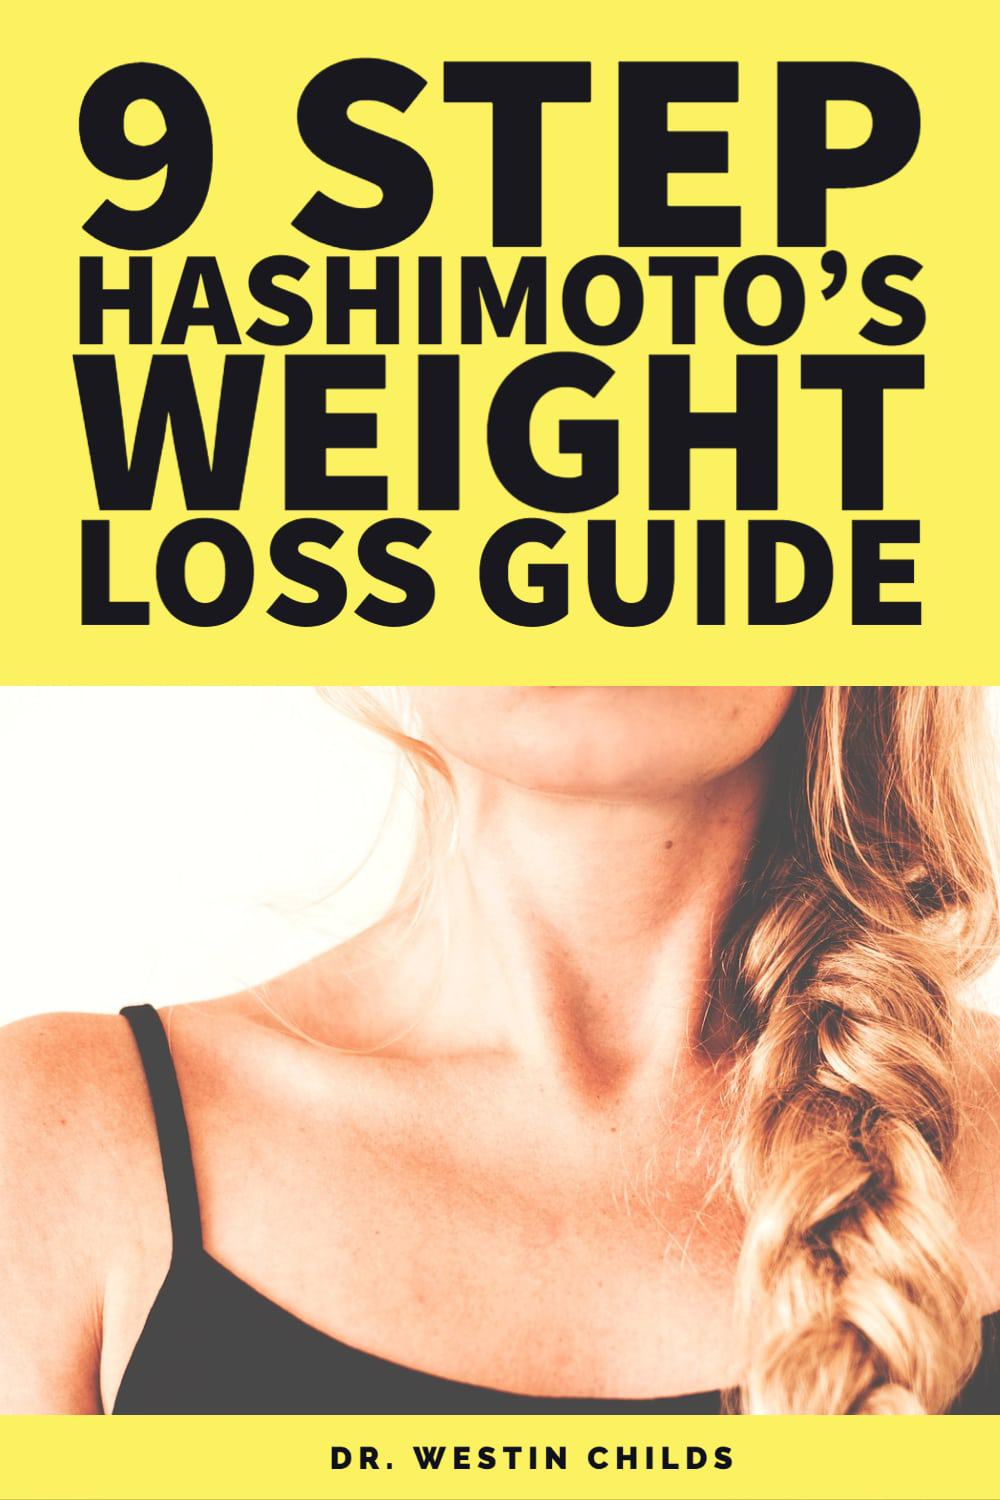 9 step hashimoto's weight loss guide